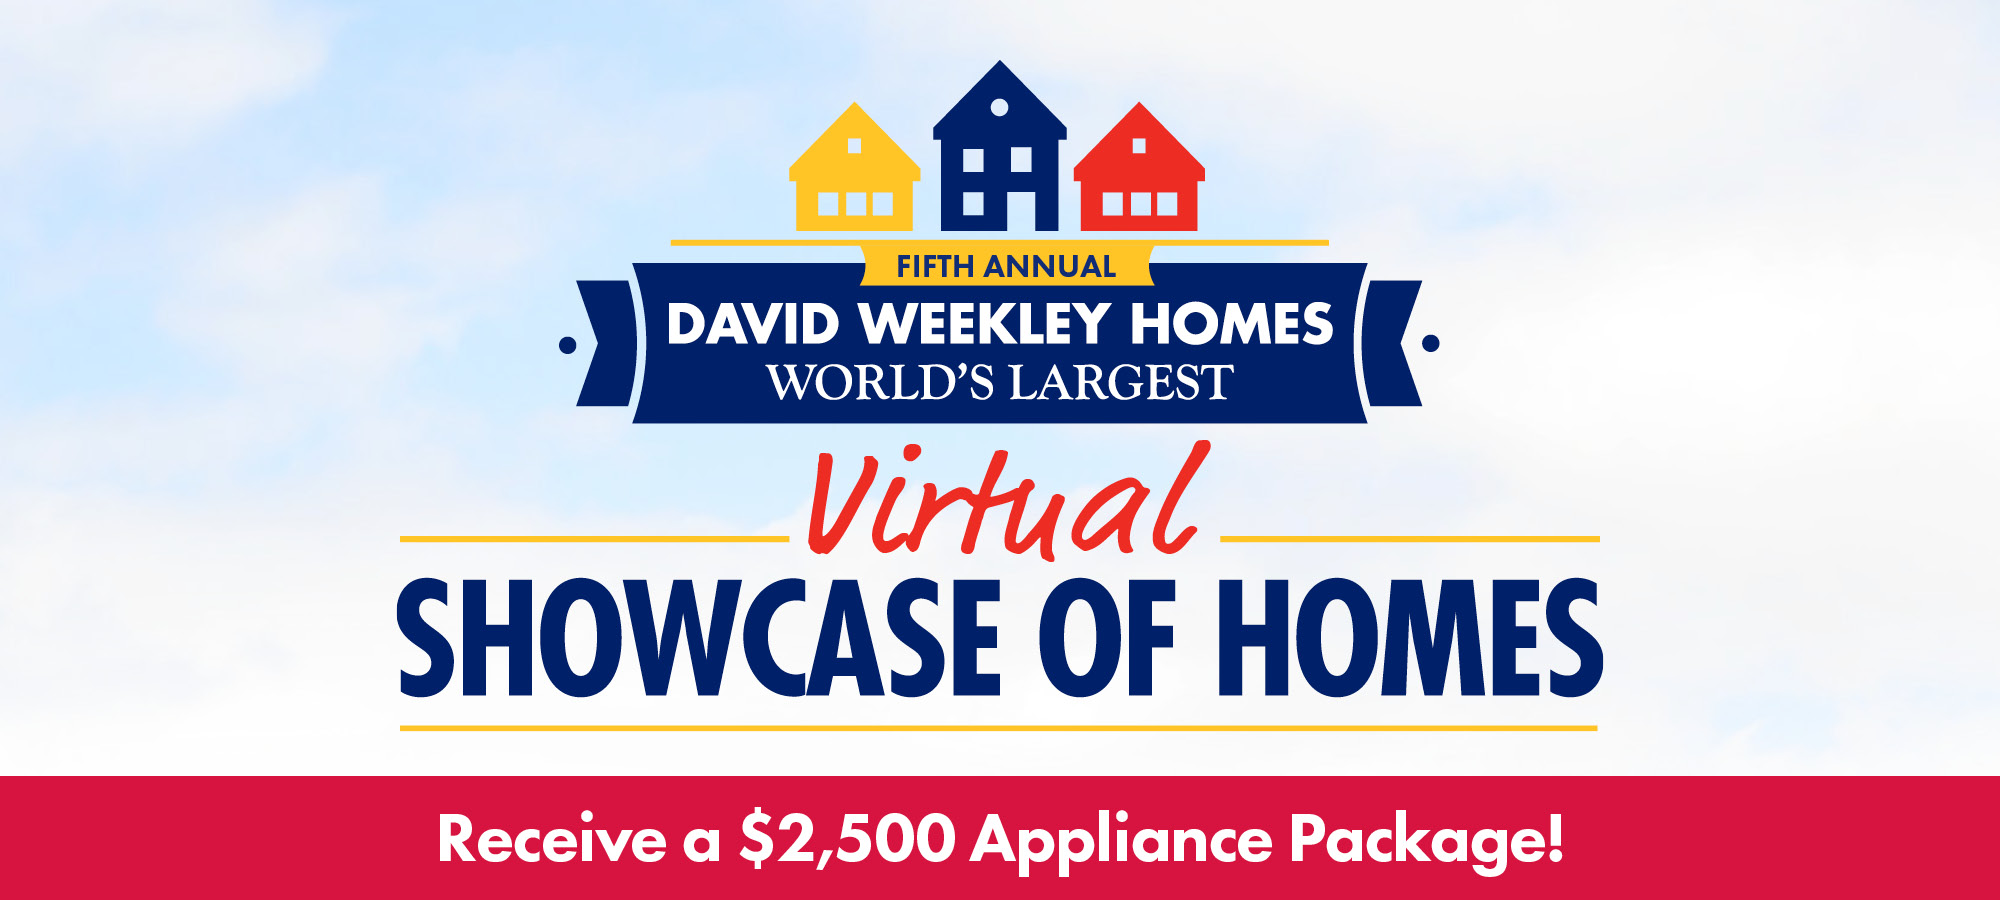 Fifth Annual David Weekley Homes World's Largest Showcase of Homes in Orlando